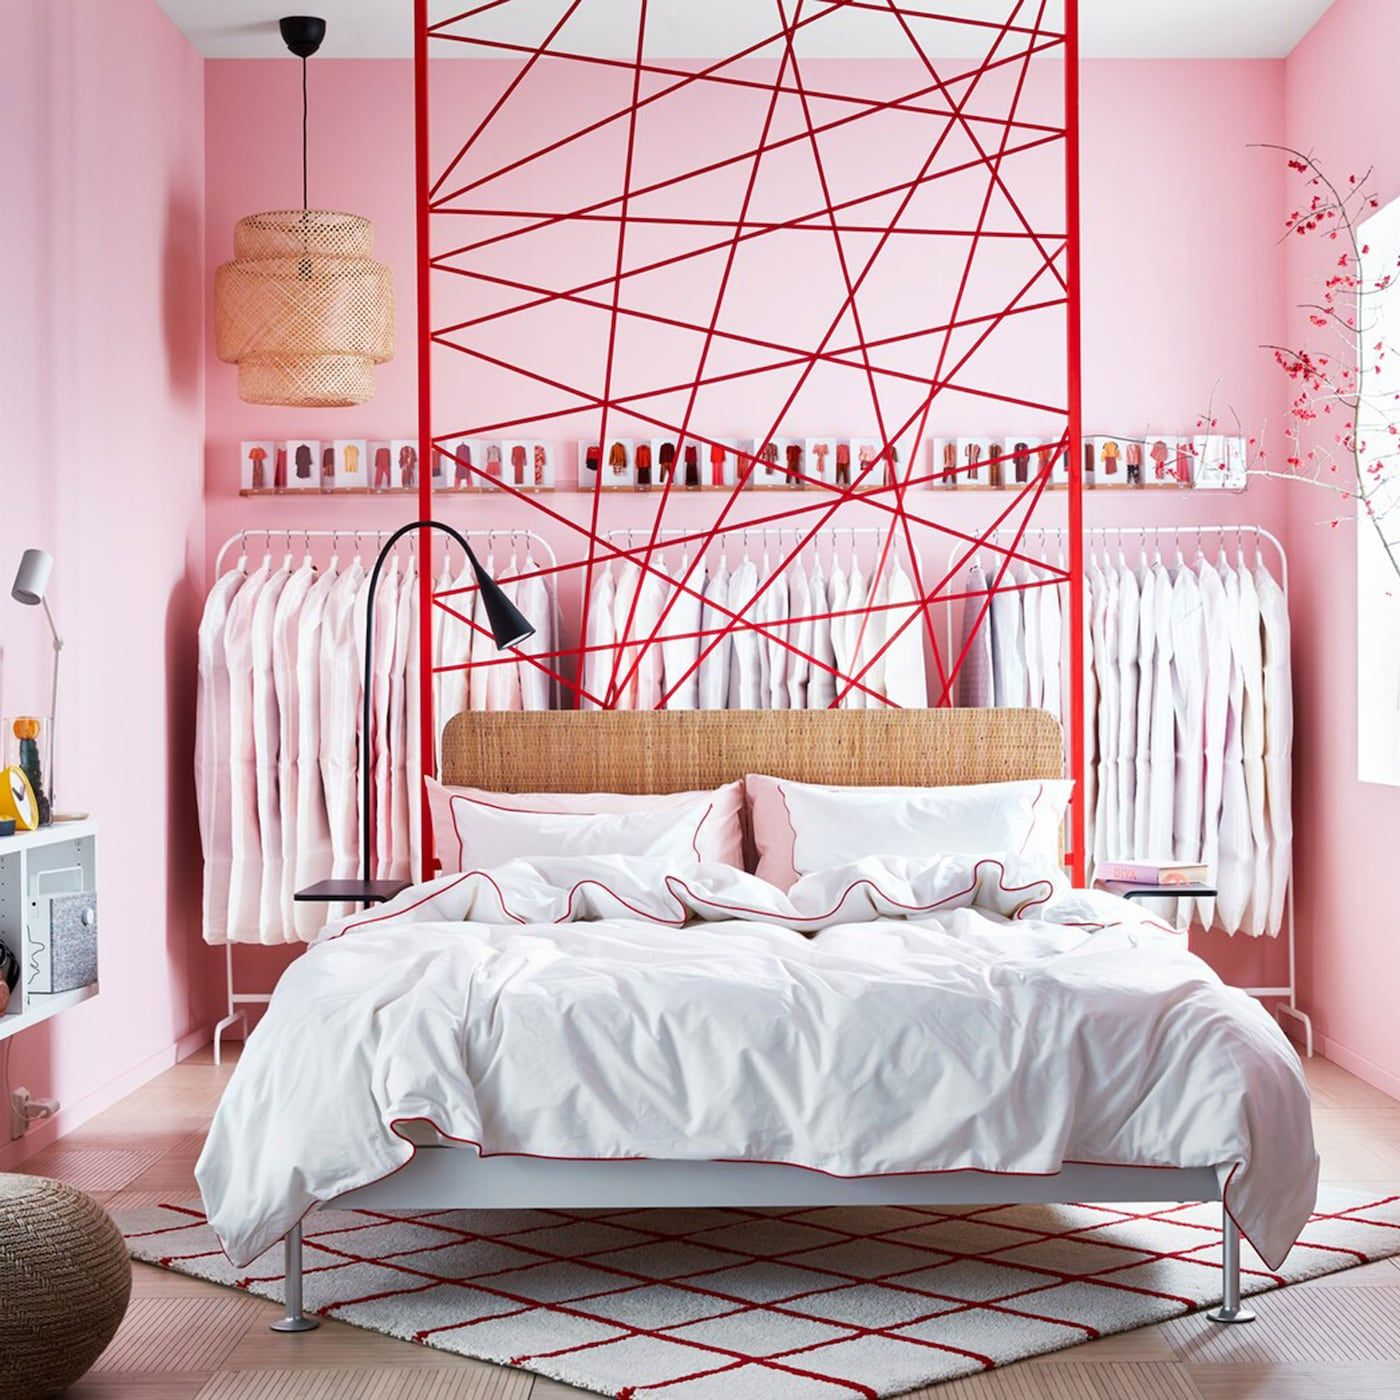 A Gallery Of Bedroom Inspiration Ikea Furniture